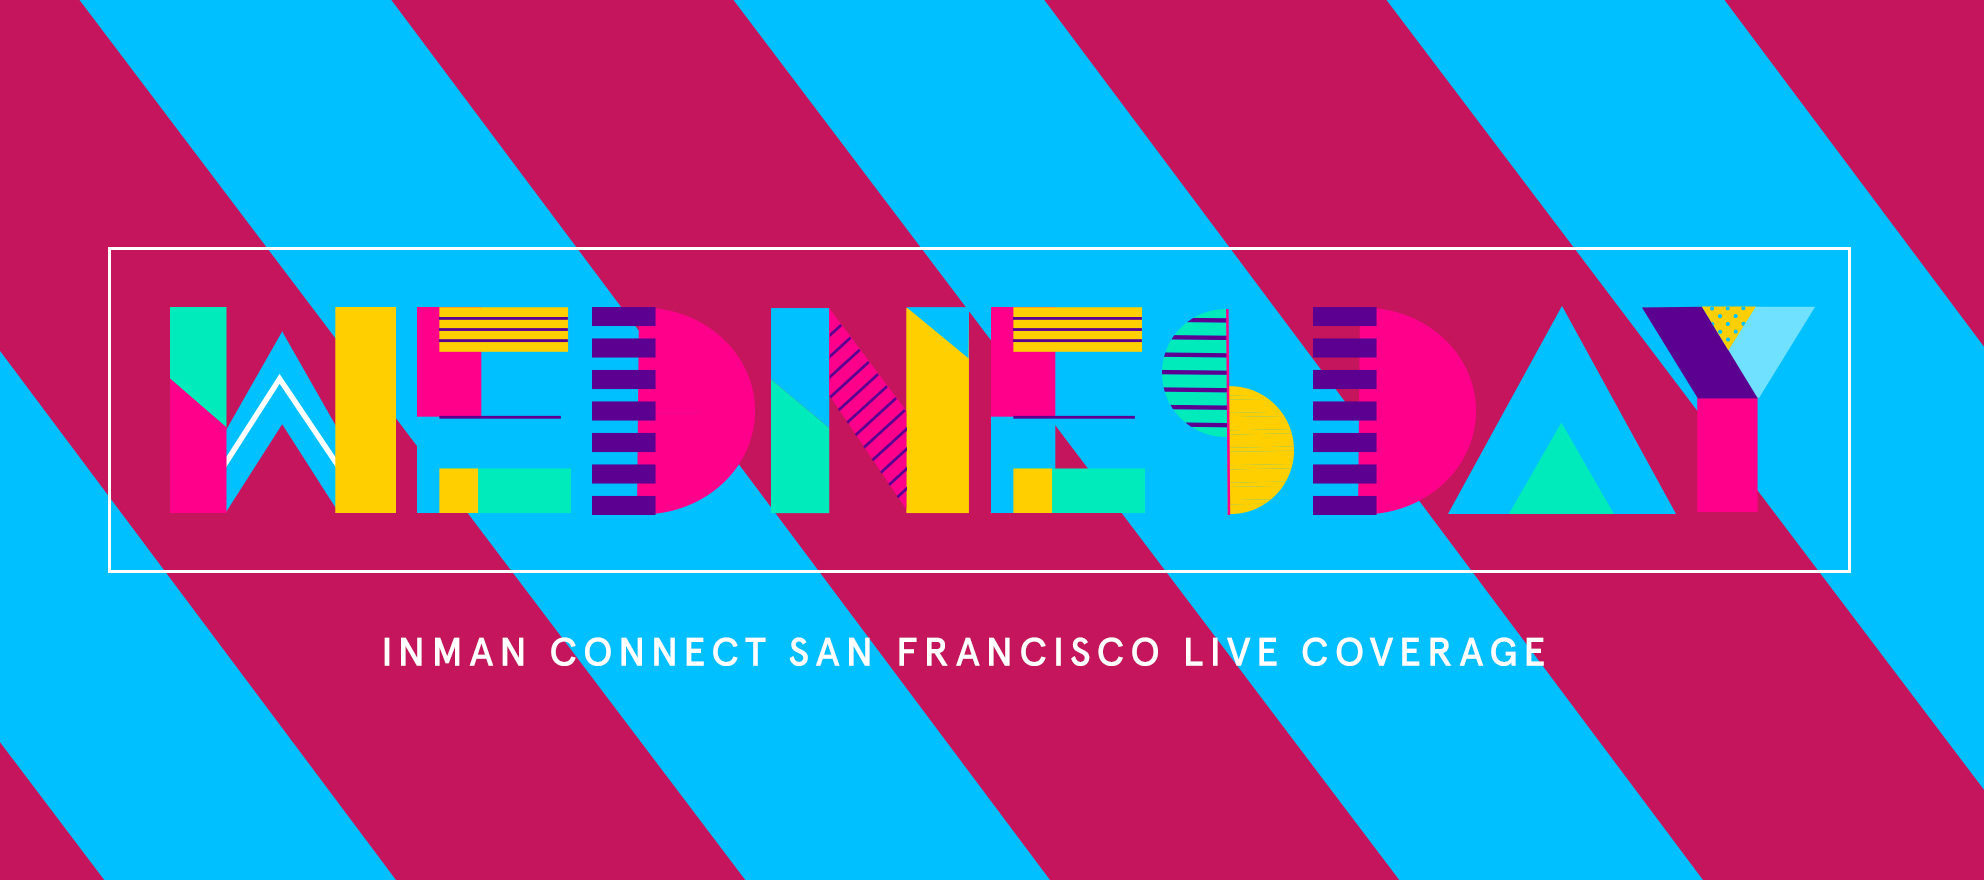 Inman Connect San Francisco Live Coverage: Wednesday